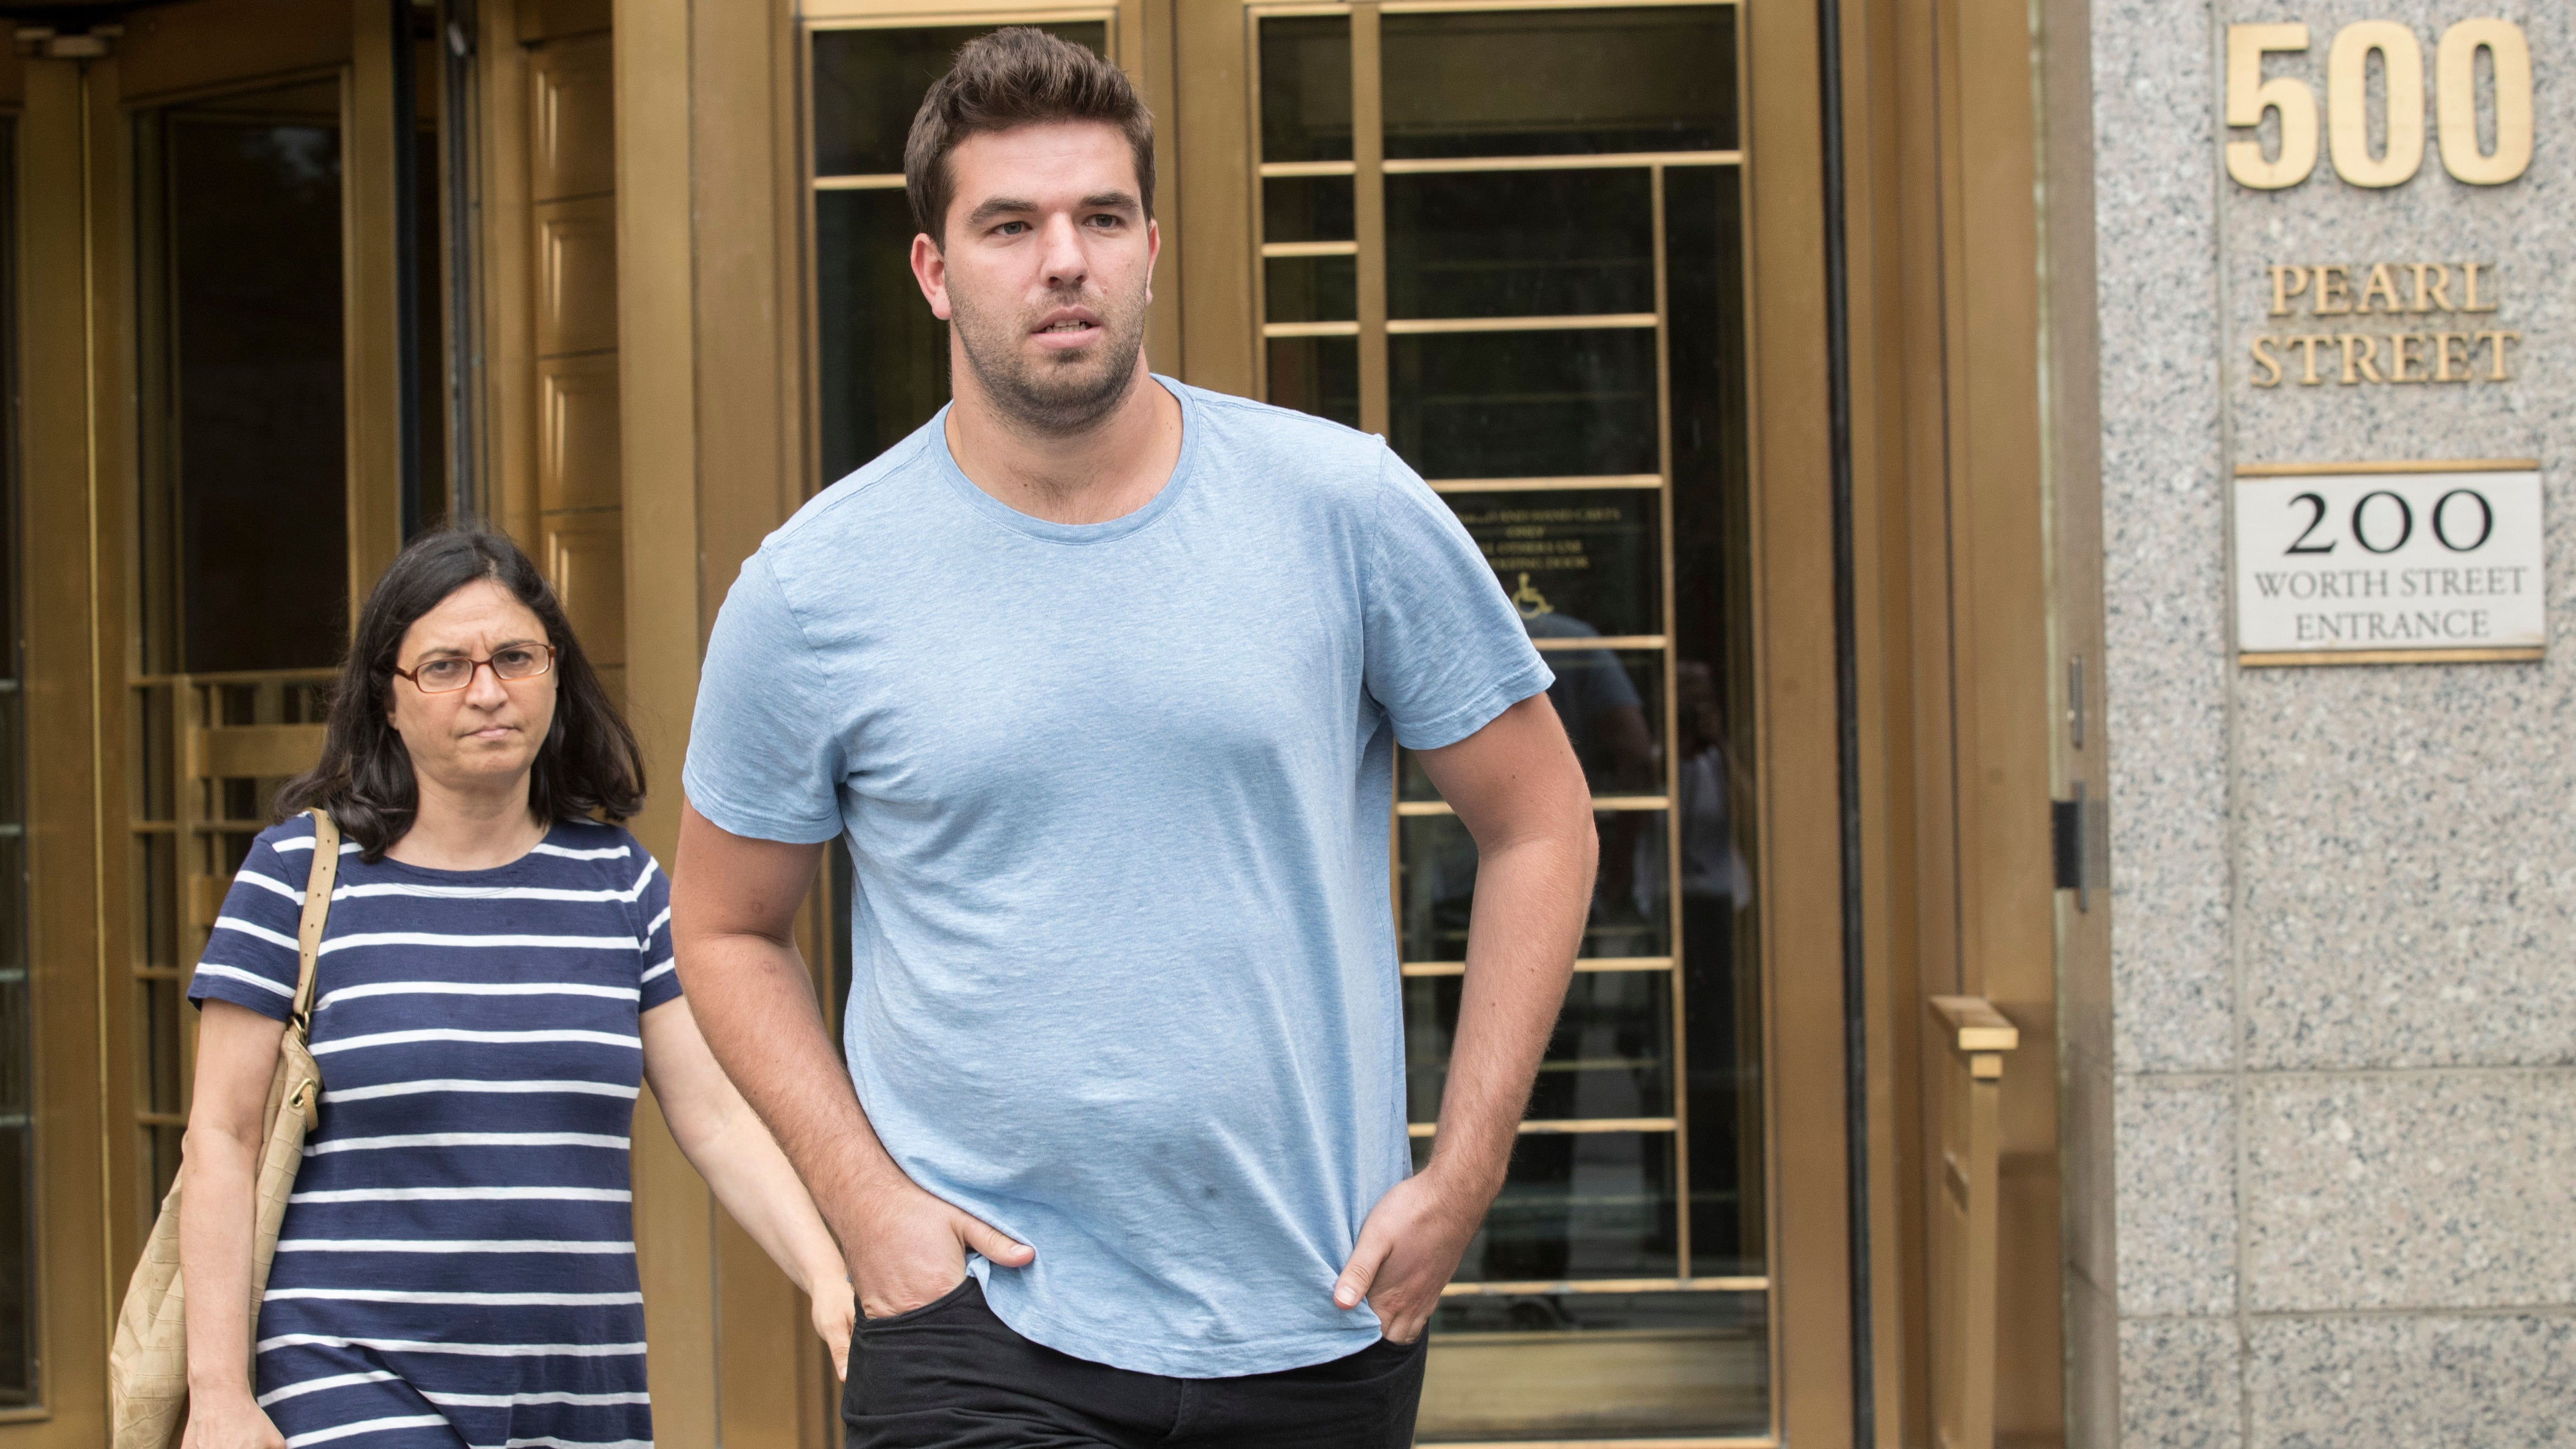 Fyre Fest Founder Pleads Guilty To Wire Fraud